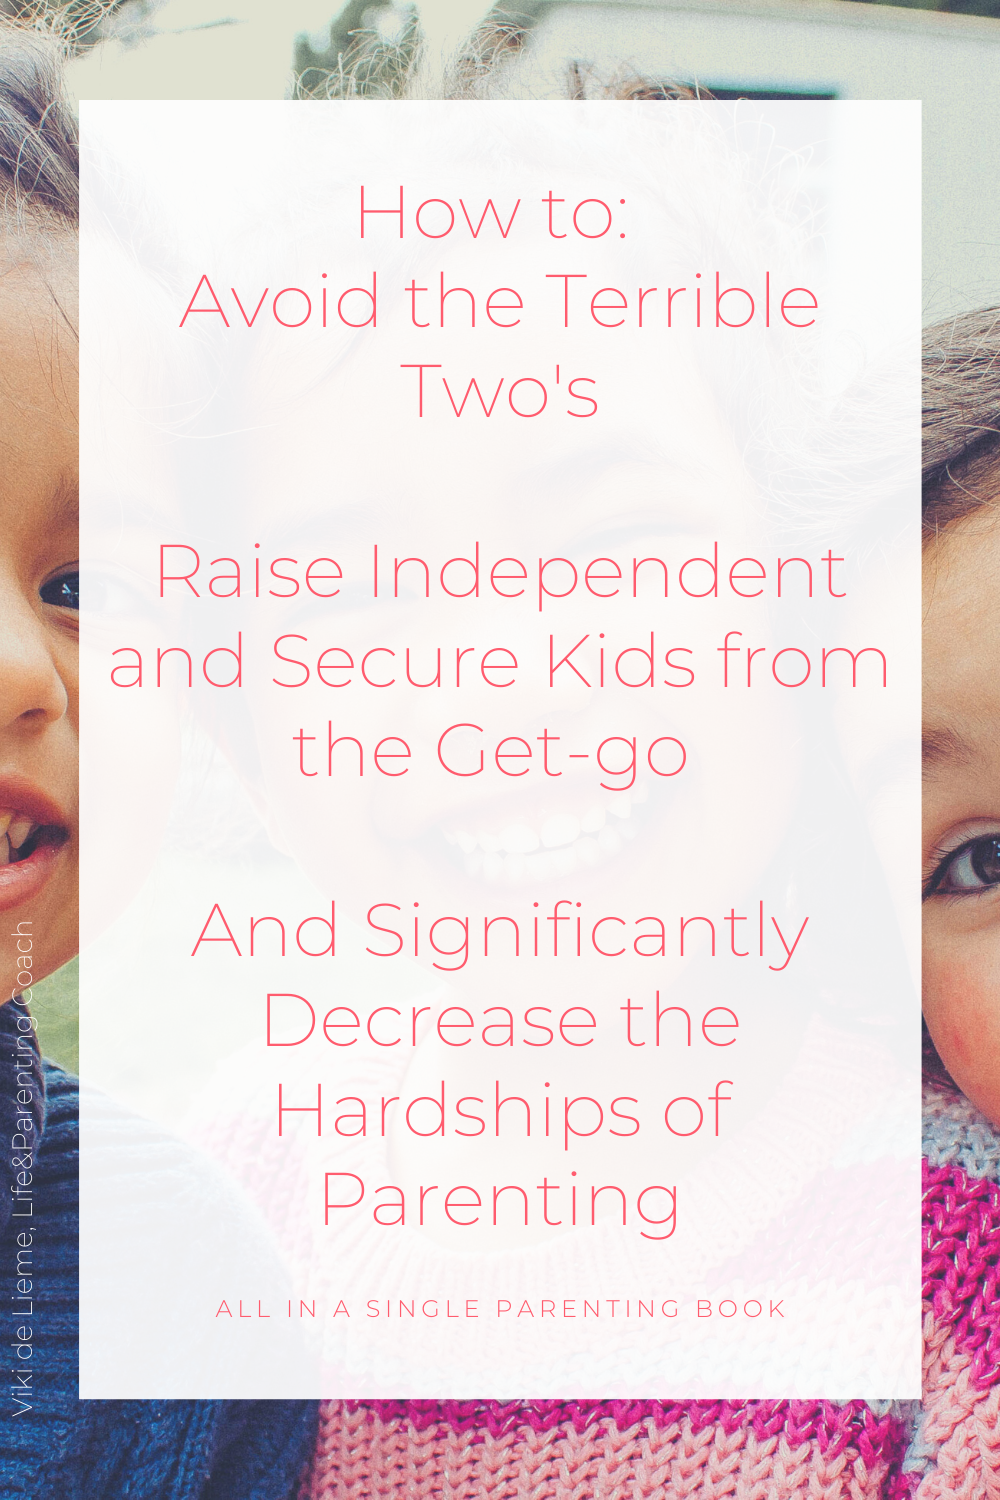 If you're an expecting mother, or if you've just had your first child, and even if you're already raising a few little human beings, there's a single and proven method that promises you the relationship that you want with your children. It is right here for you. #motherhood #parenting #tantrums #kidsbigfeelings #emotioncoachingkids #raisinghappykids #familylife #happyfamily #smartparenting #attachmentparenting #respectfulparenting #happyparenting #peacefulparenting #children'sbehaviour #momtobe